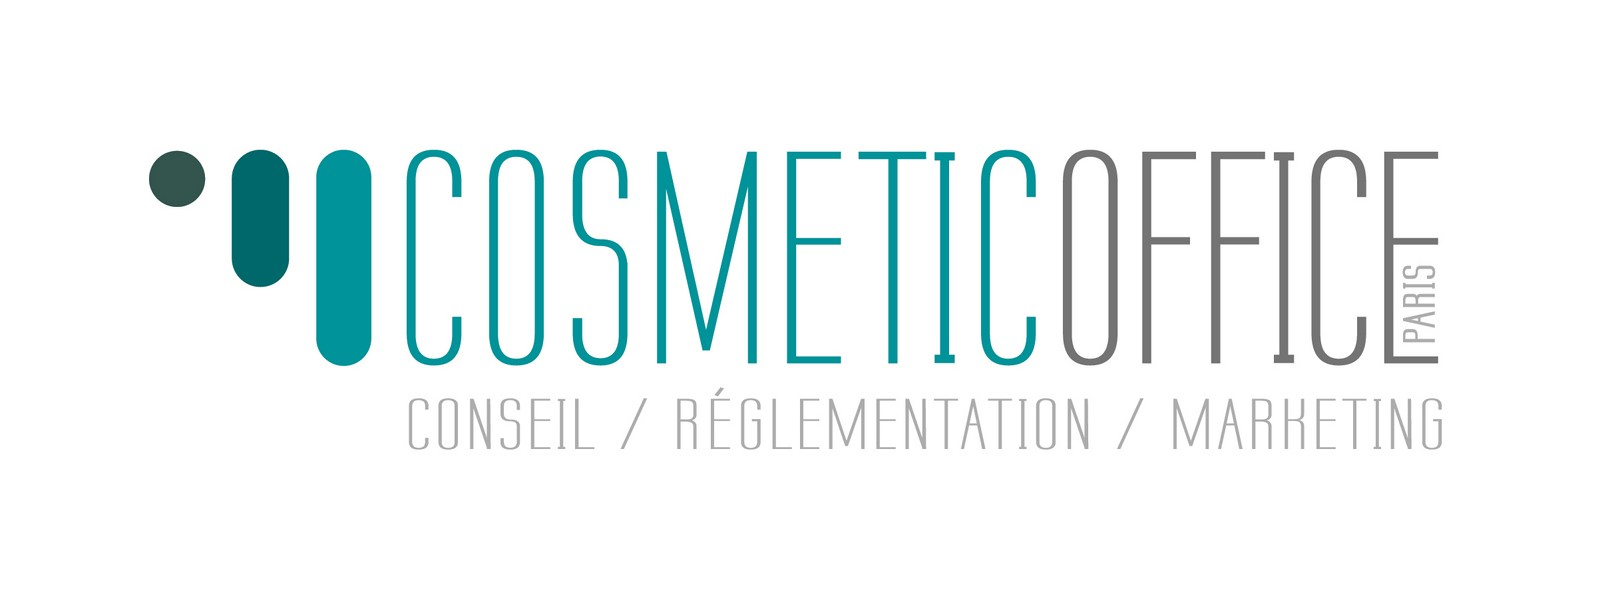 cosmetic-office